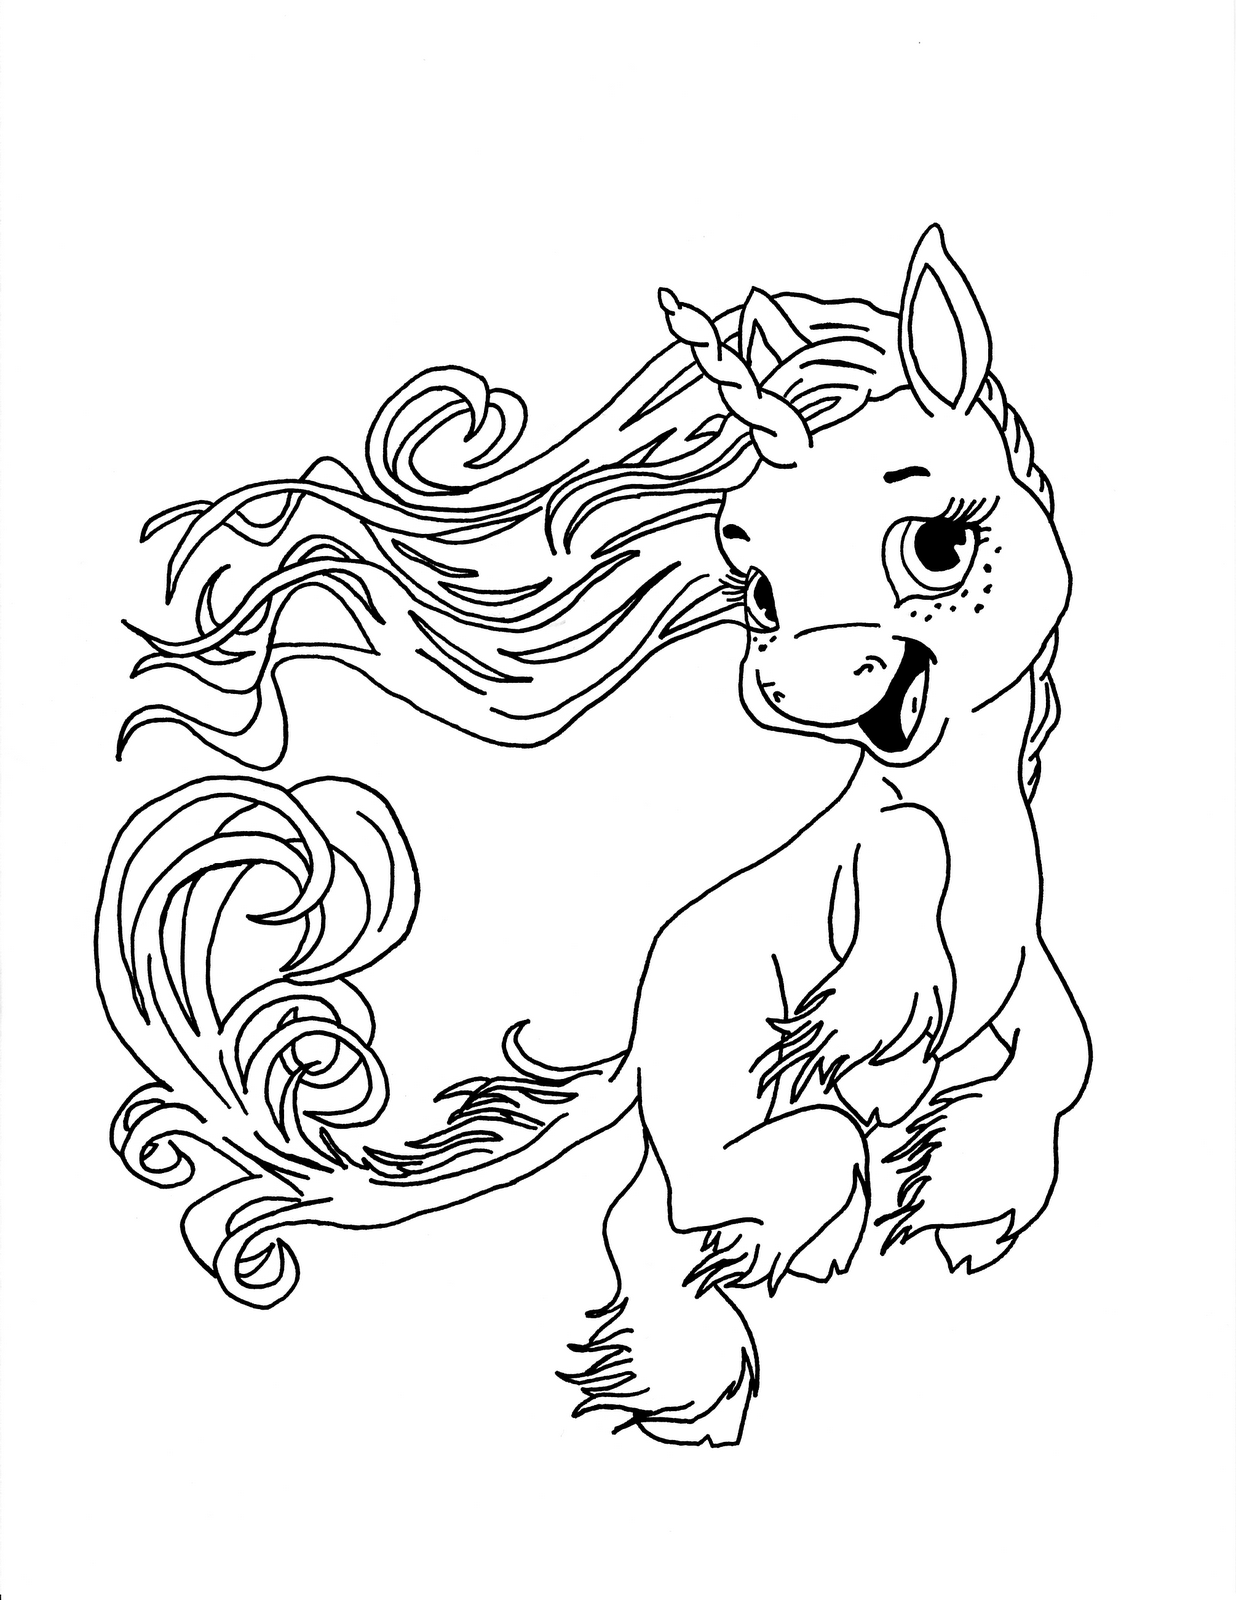 1236x1600 Baby Unicorn Coloring Pages For Kids Coloringstar Incredible Page